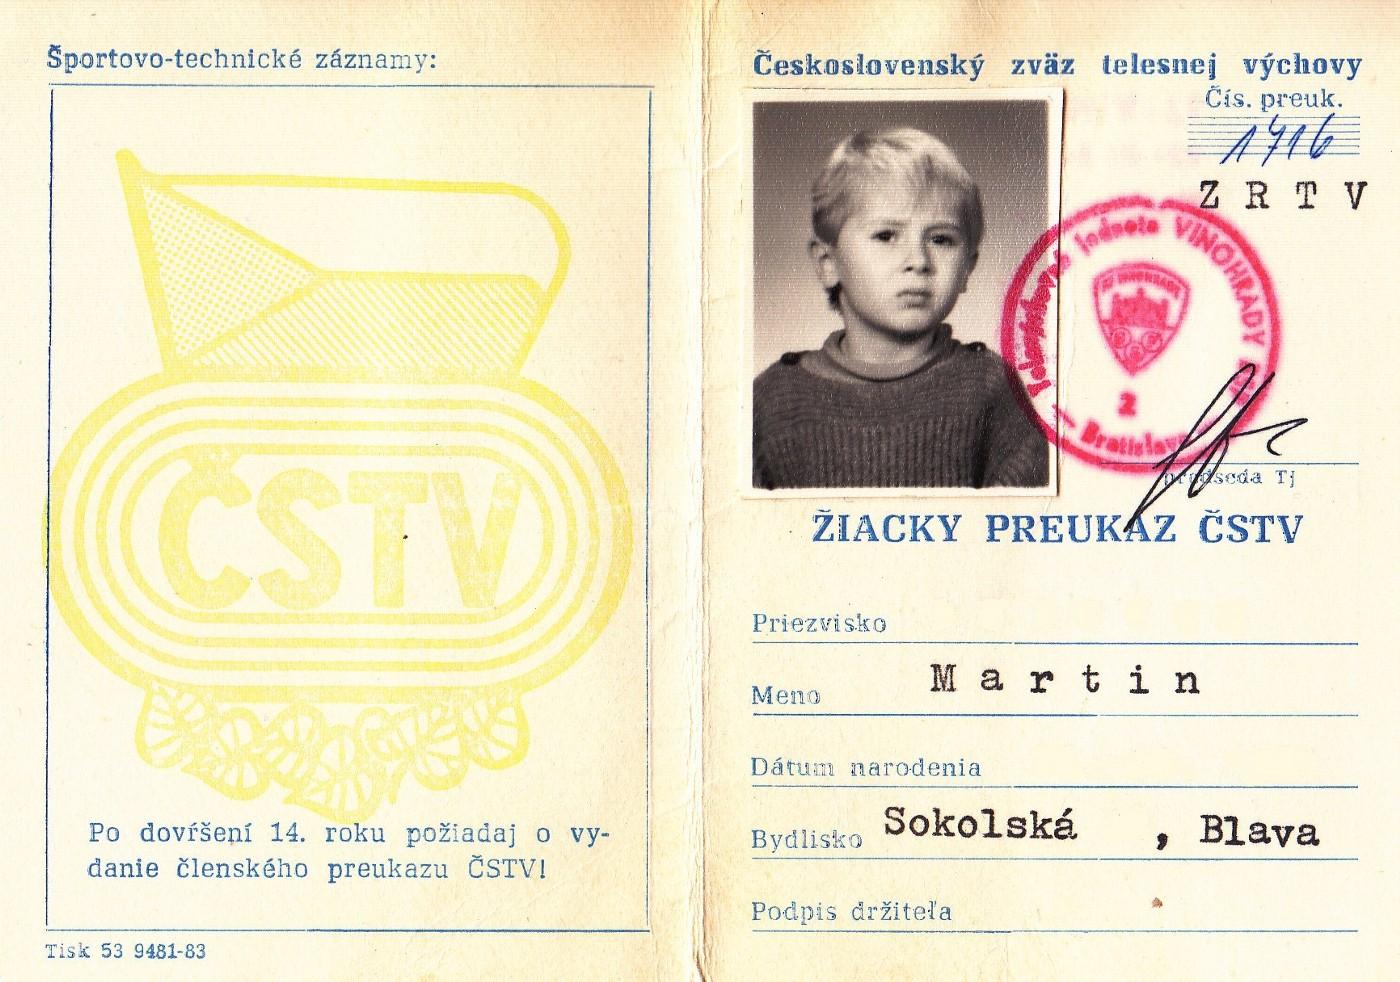 A childhood photo of the author's first ID from the now defunct country of Czechoslovakia.